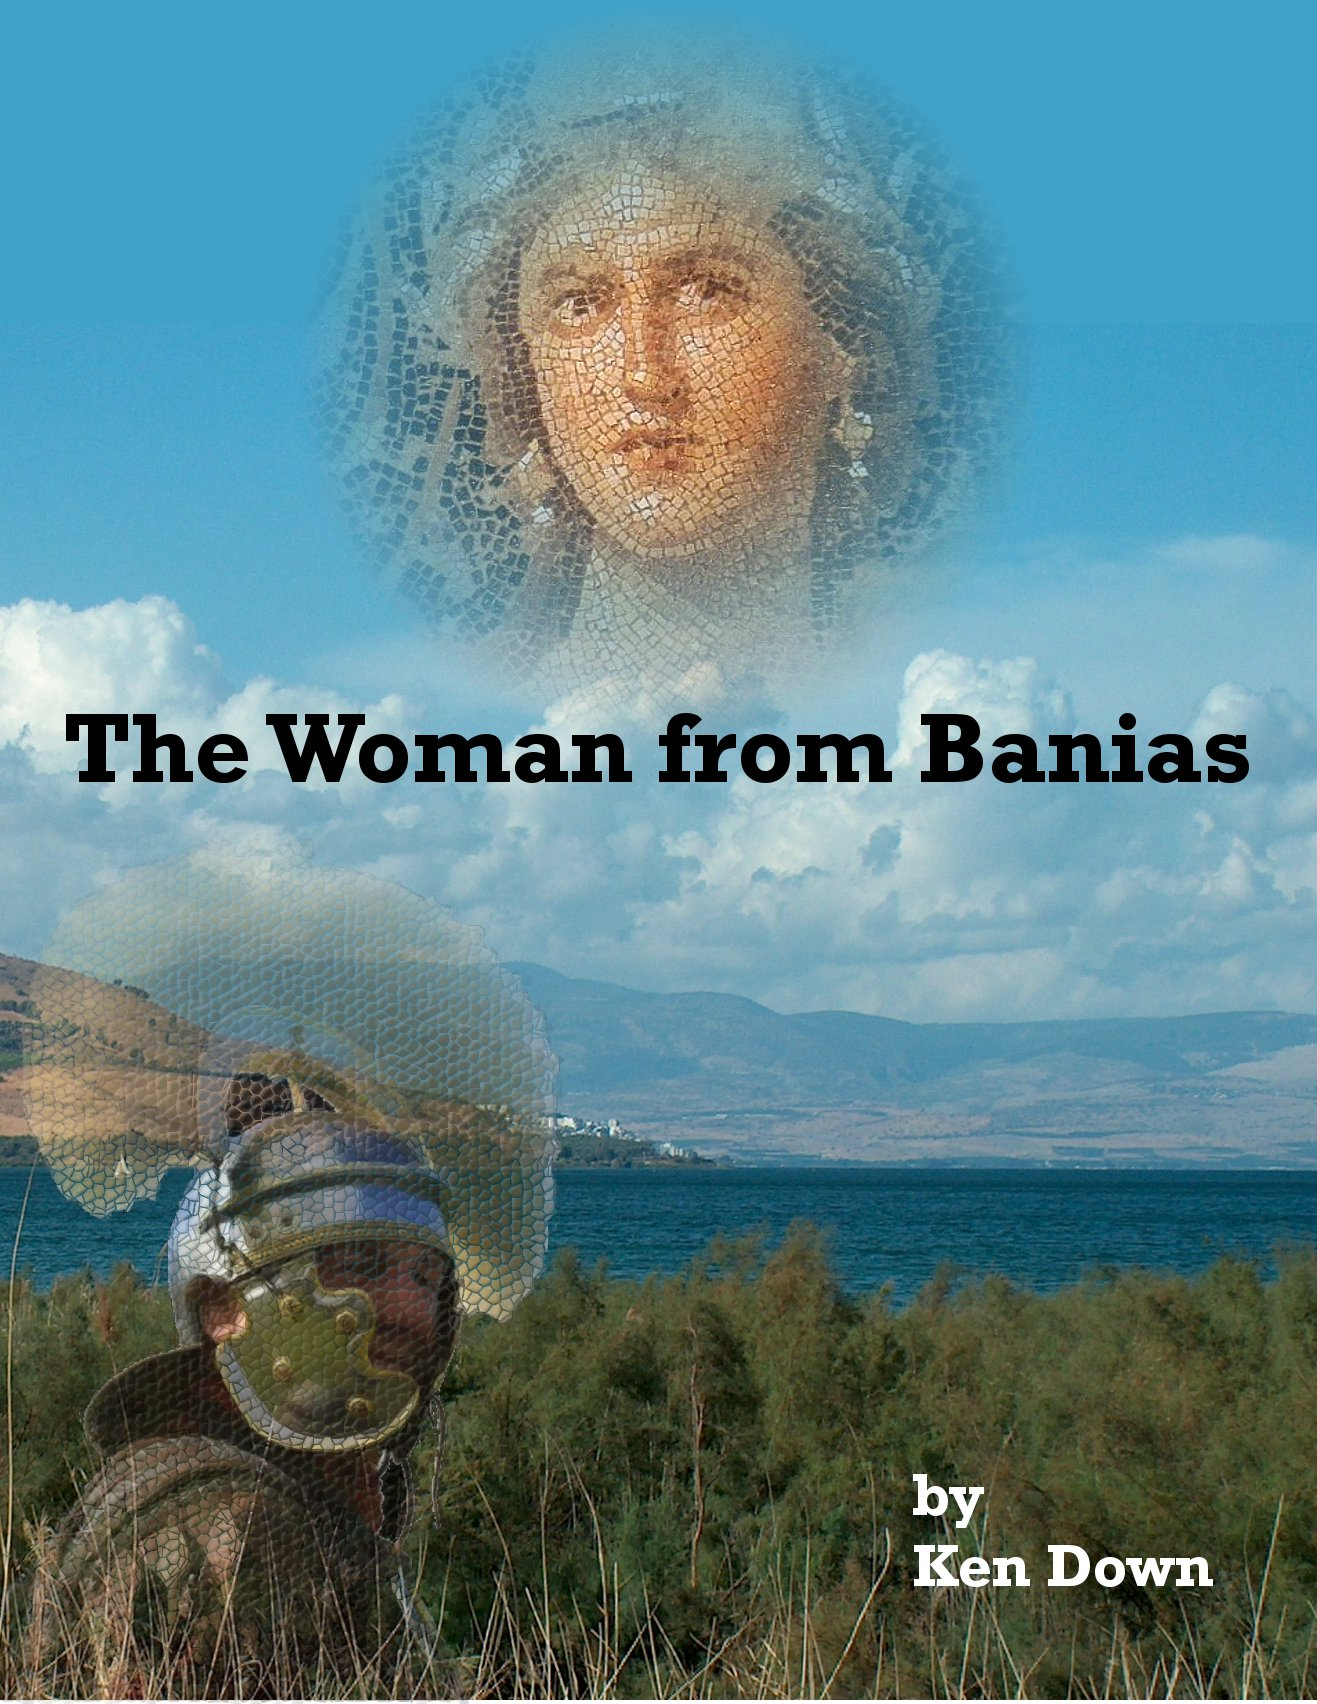 The Woman from Banias